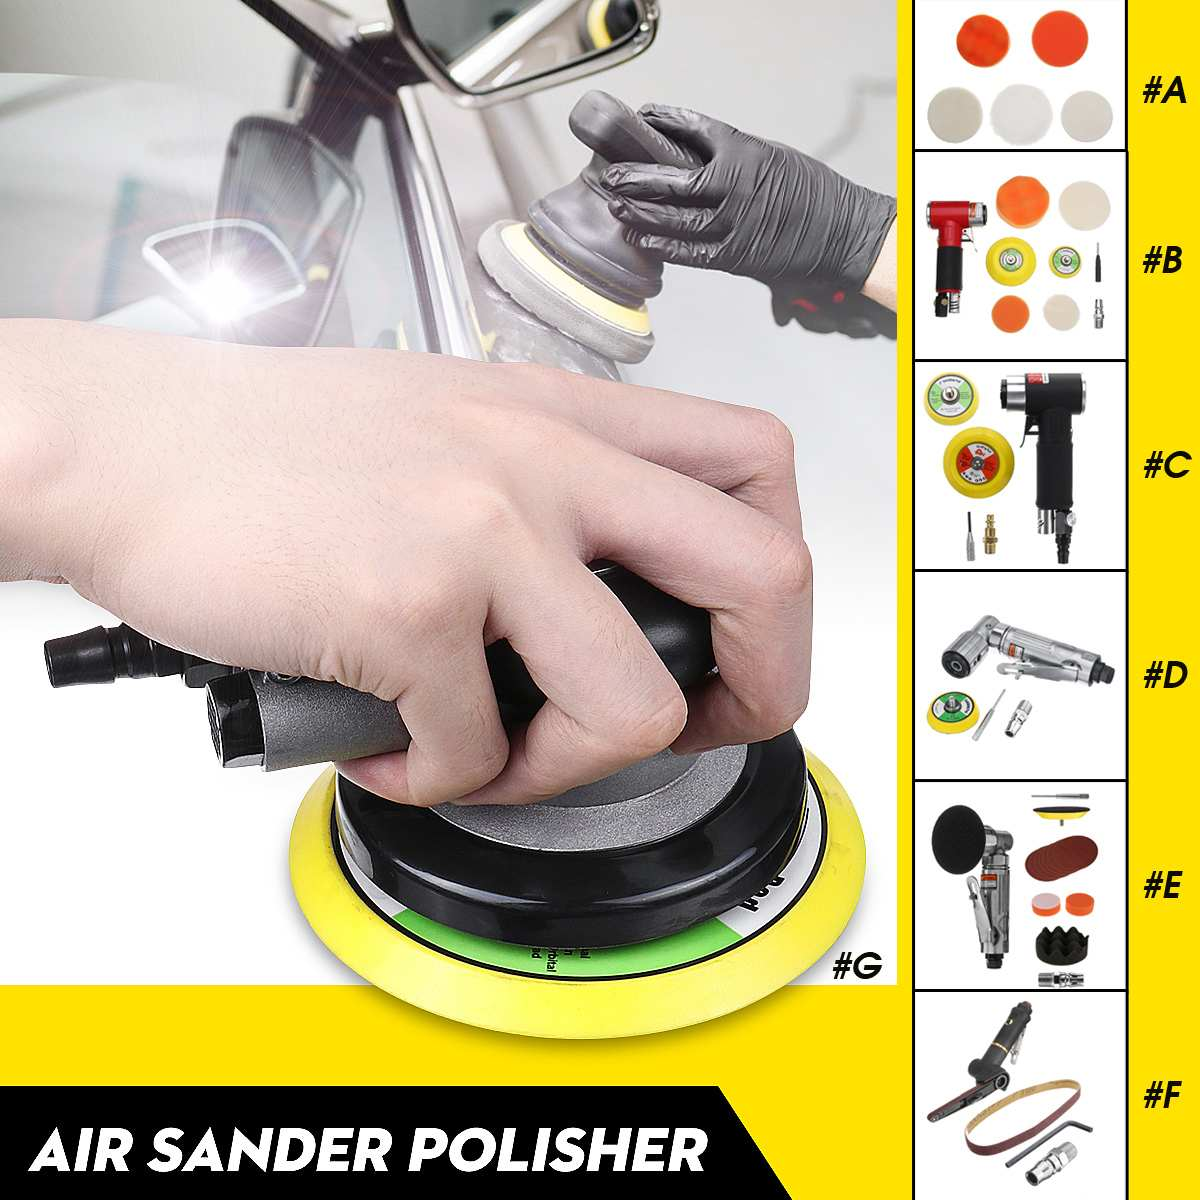 Sander Polisher Dual Action Random Orbital Polishing Pad Car Pneumatic Grinding For Car Paint Care Tool